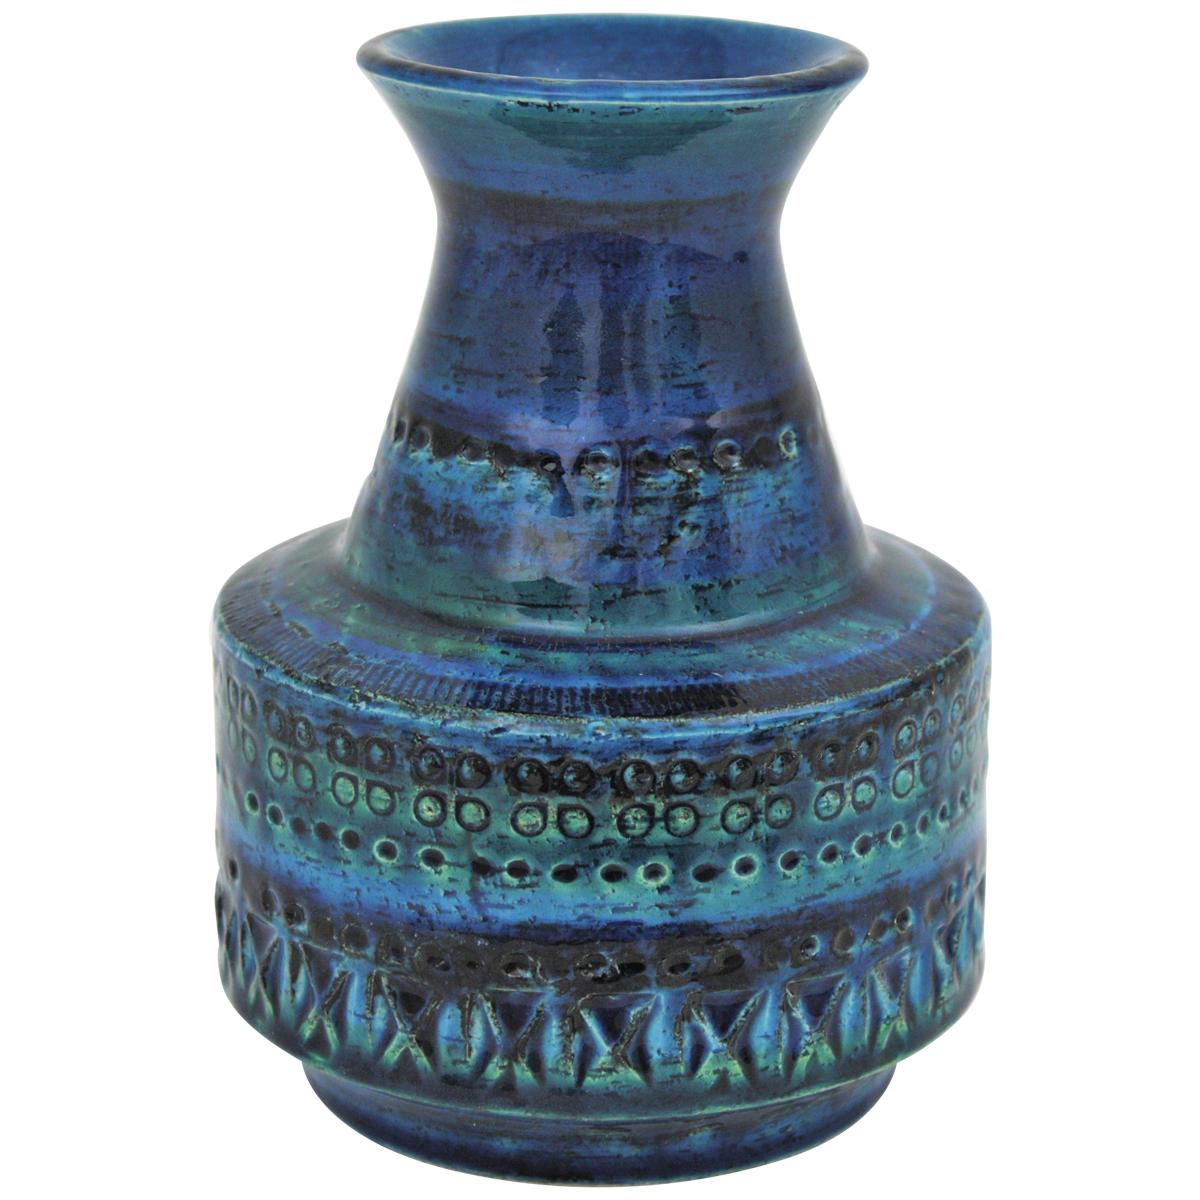 1960s Italian Aldo Londi for Bitossi Rimini Blue Glazed Ceramic Conic Vase